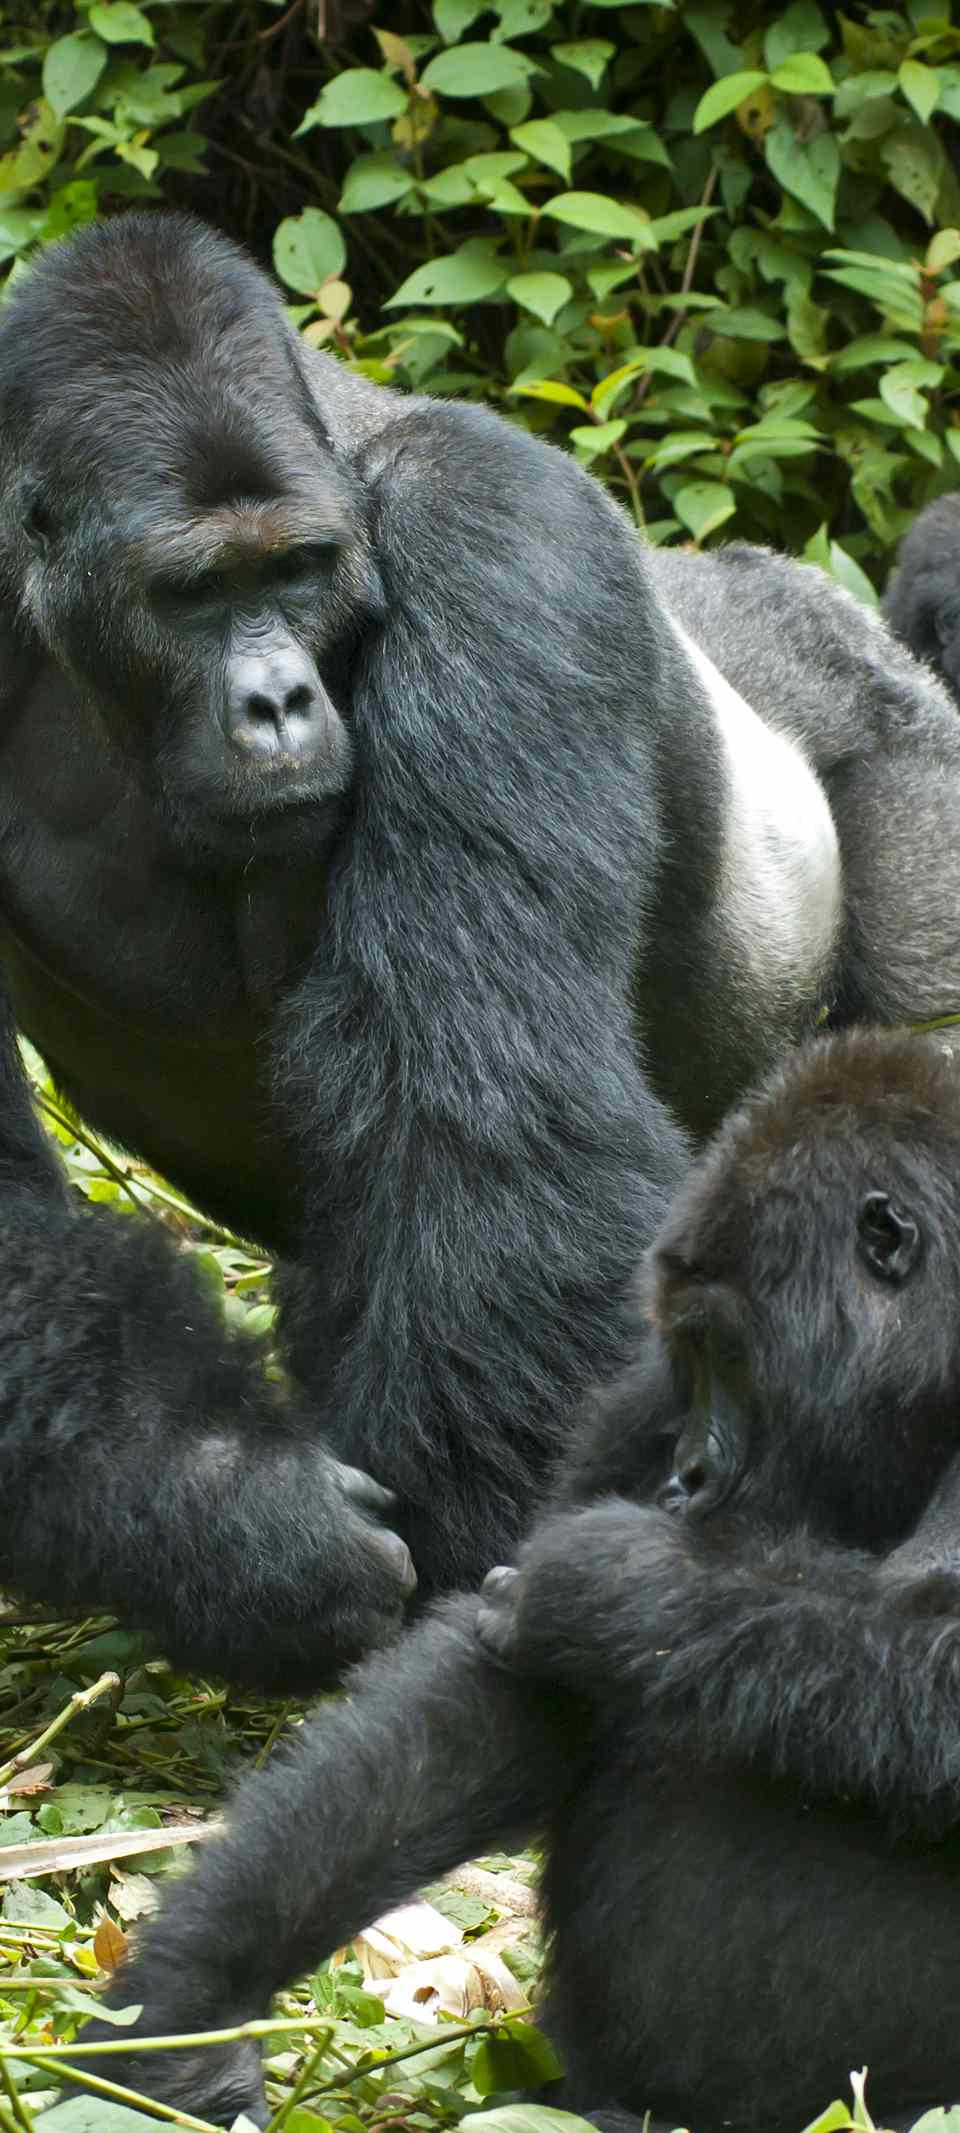 Family of eastern lowland gorillas in the DRC